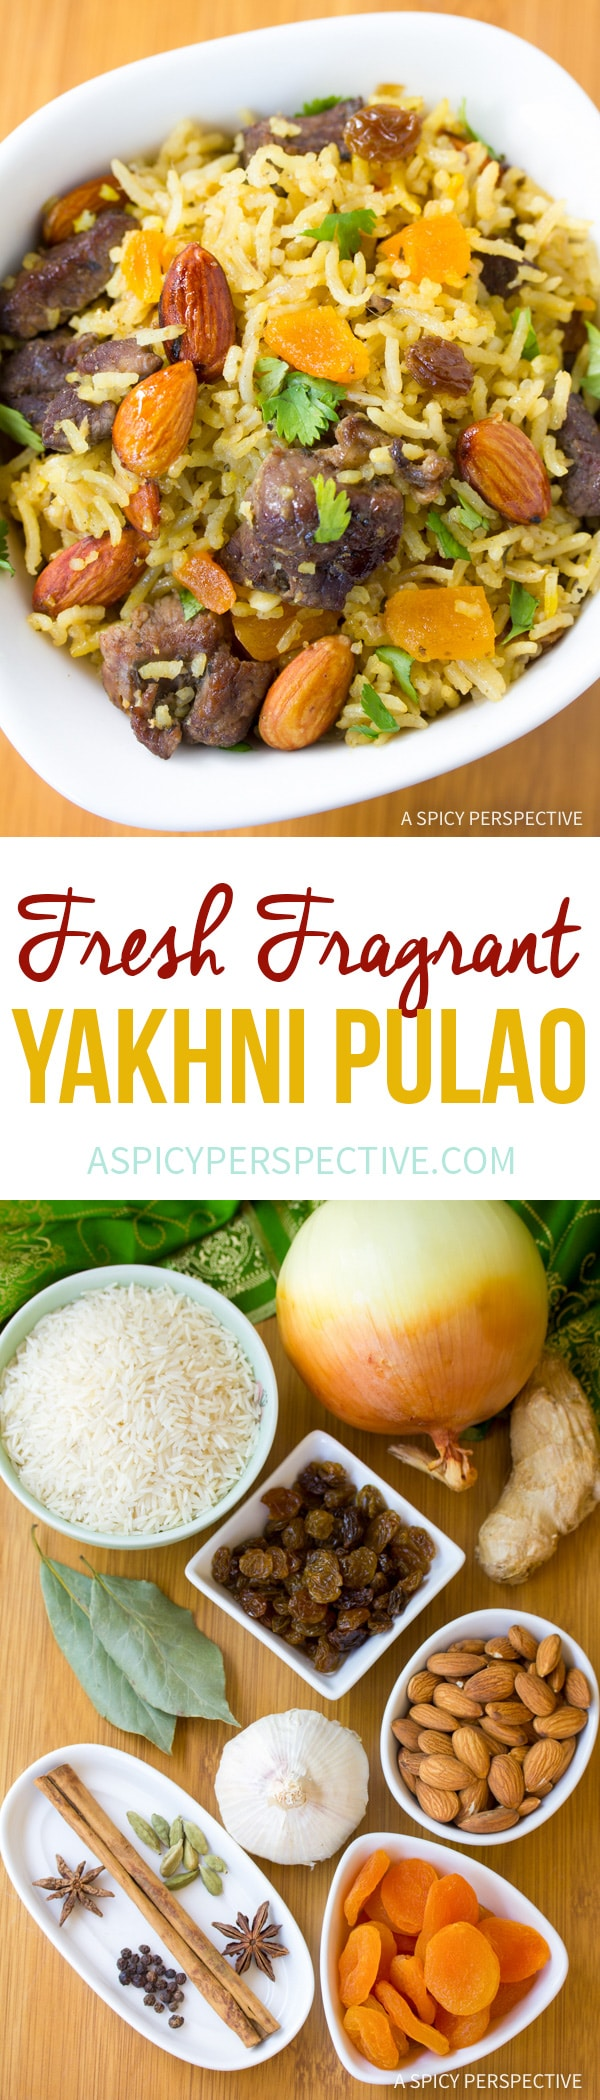 Fresh Fragrant Yakhni Pulao Recipe